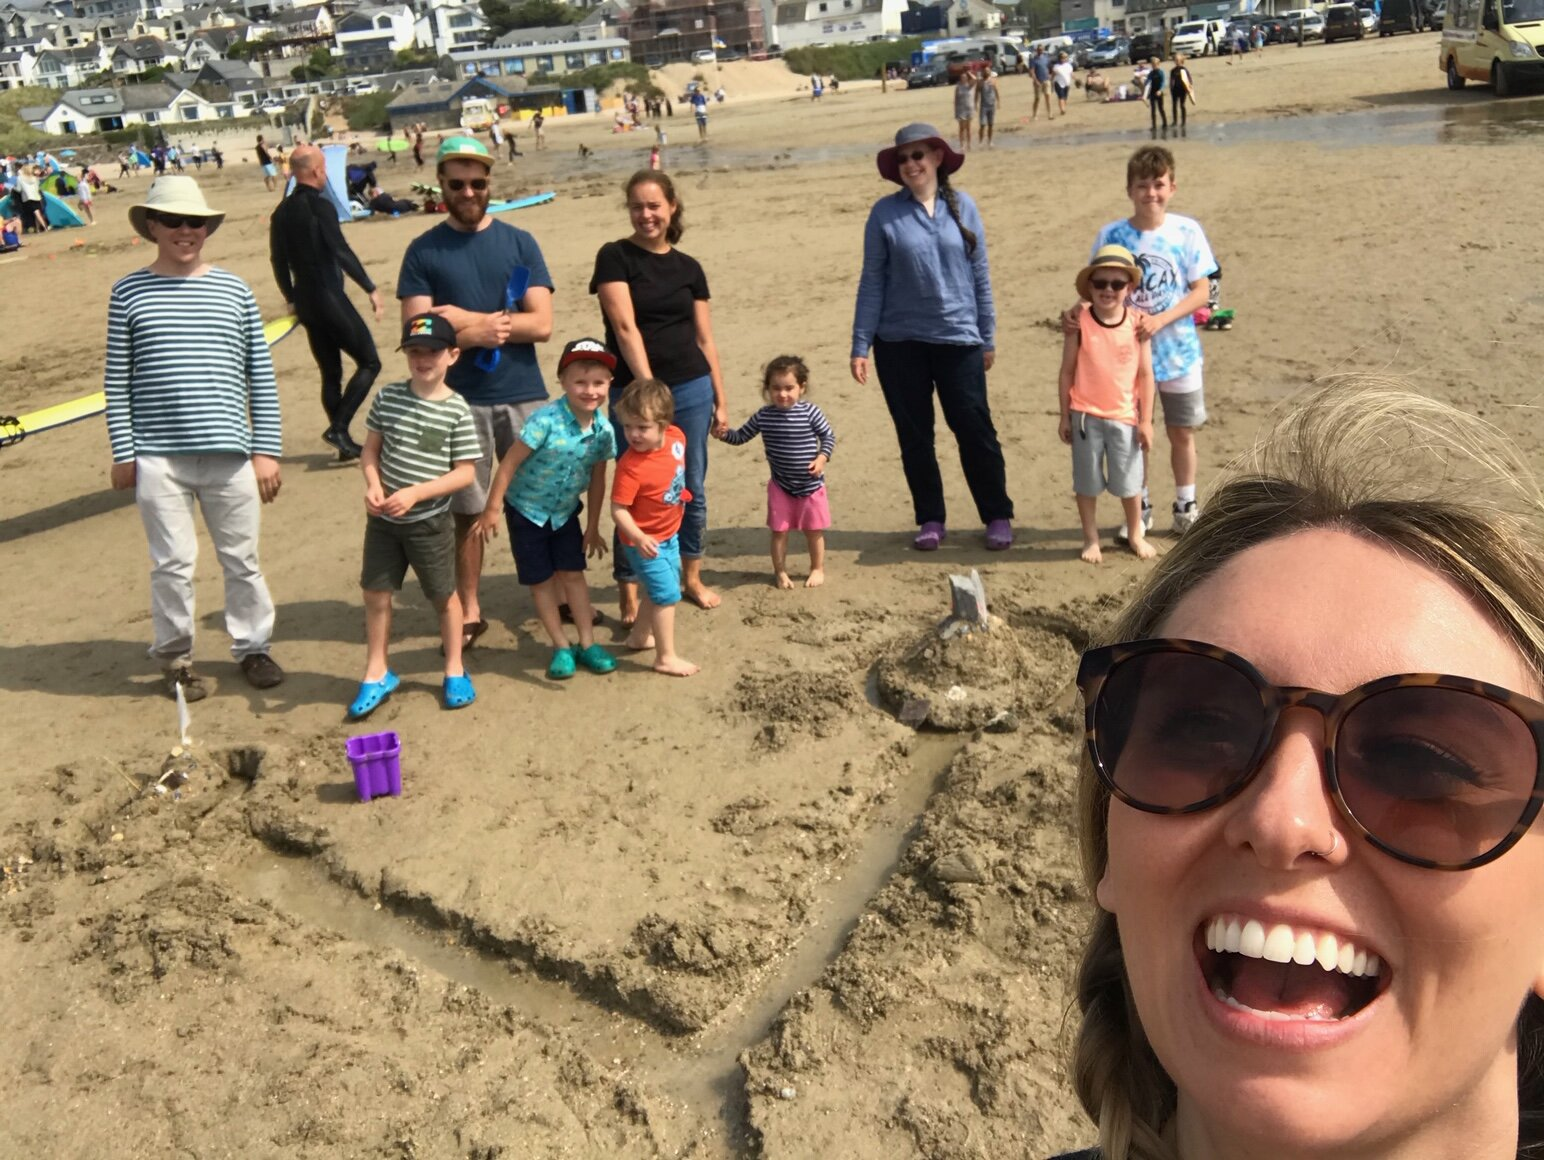 Sand building competition with the kids from our church social at the beach earlier this summer